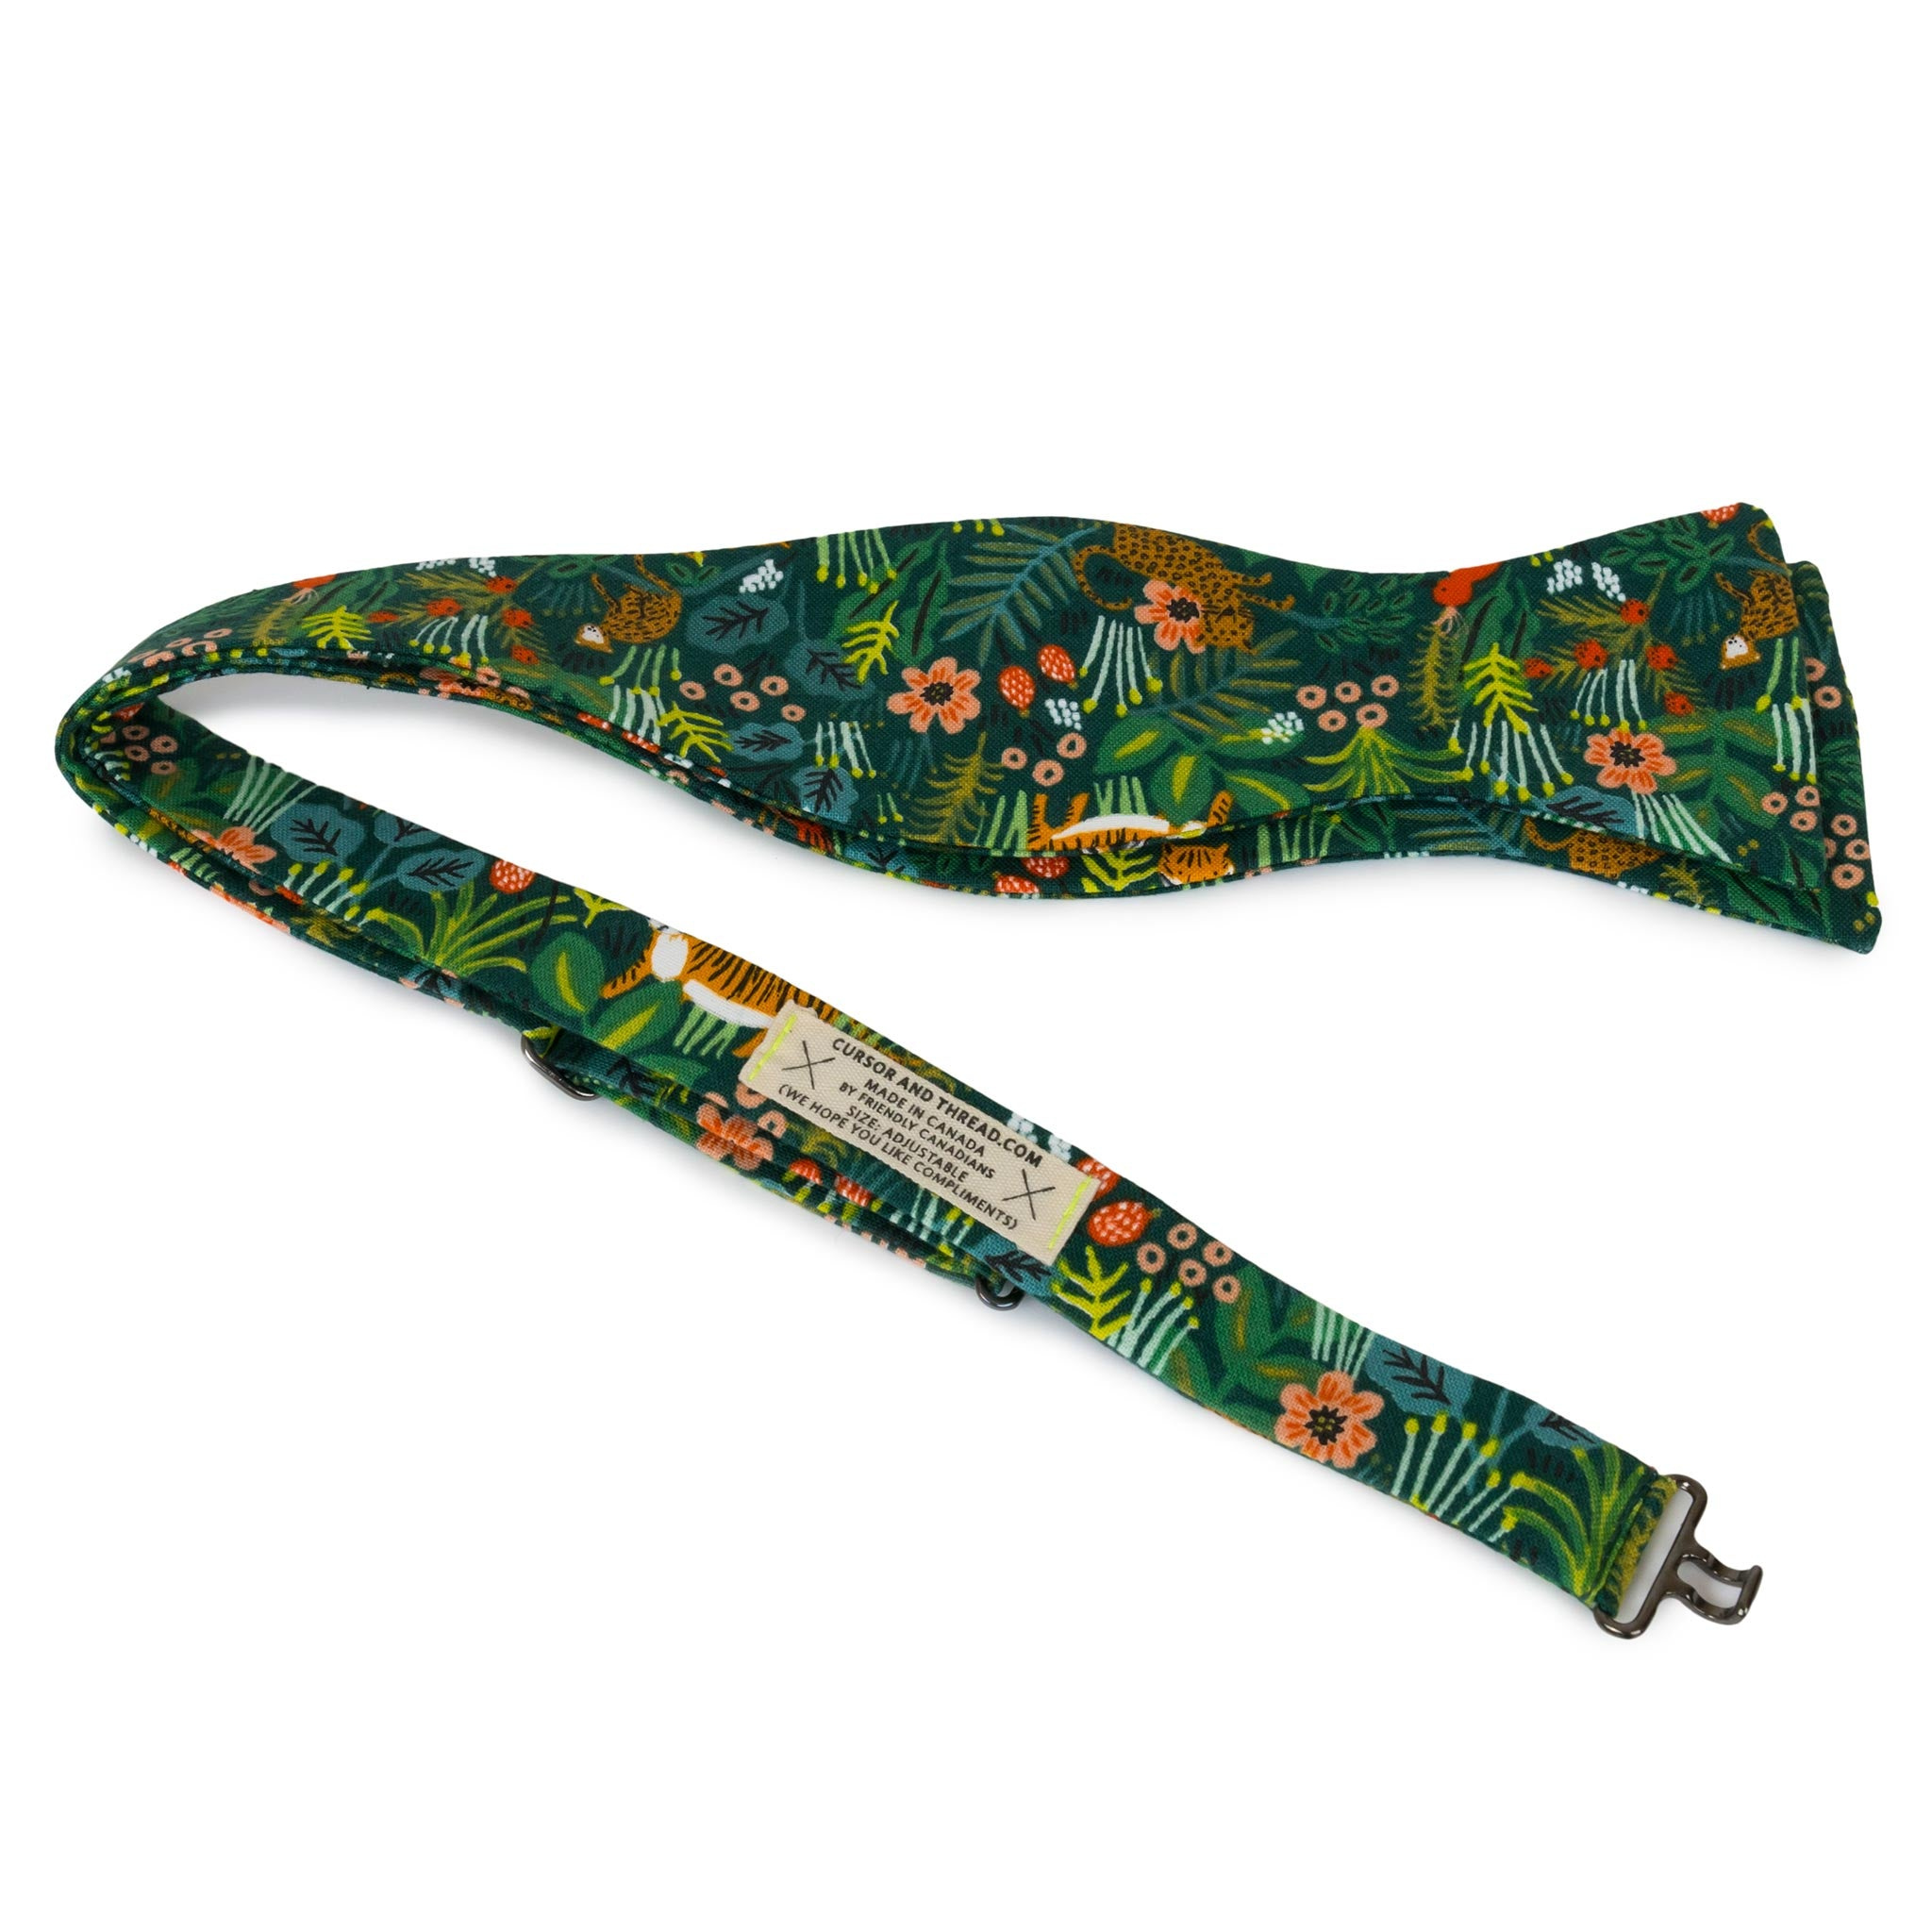 Jungle Selva rifle bow tie, made in Canada with Japanese Cotton.